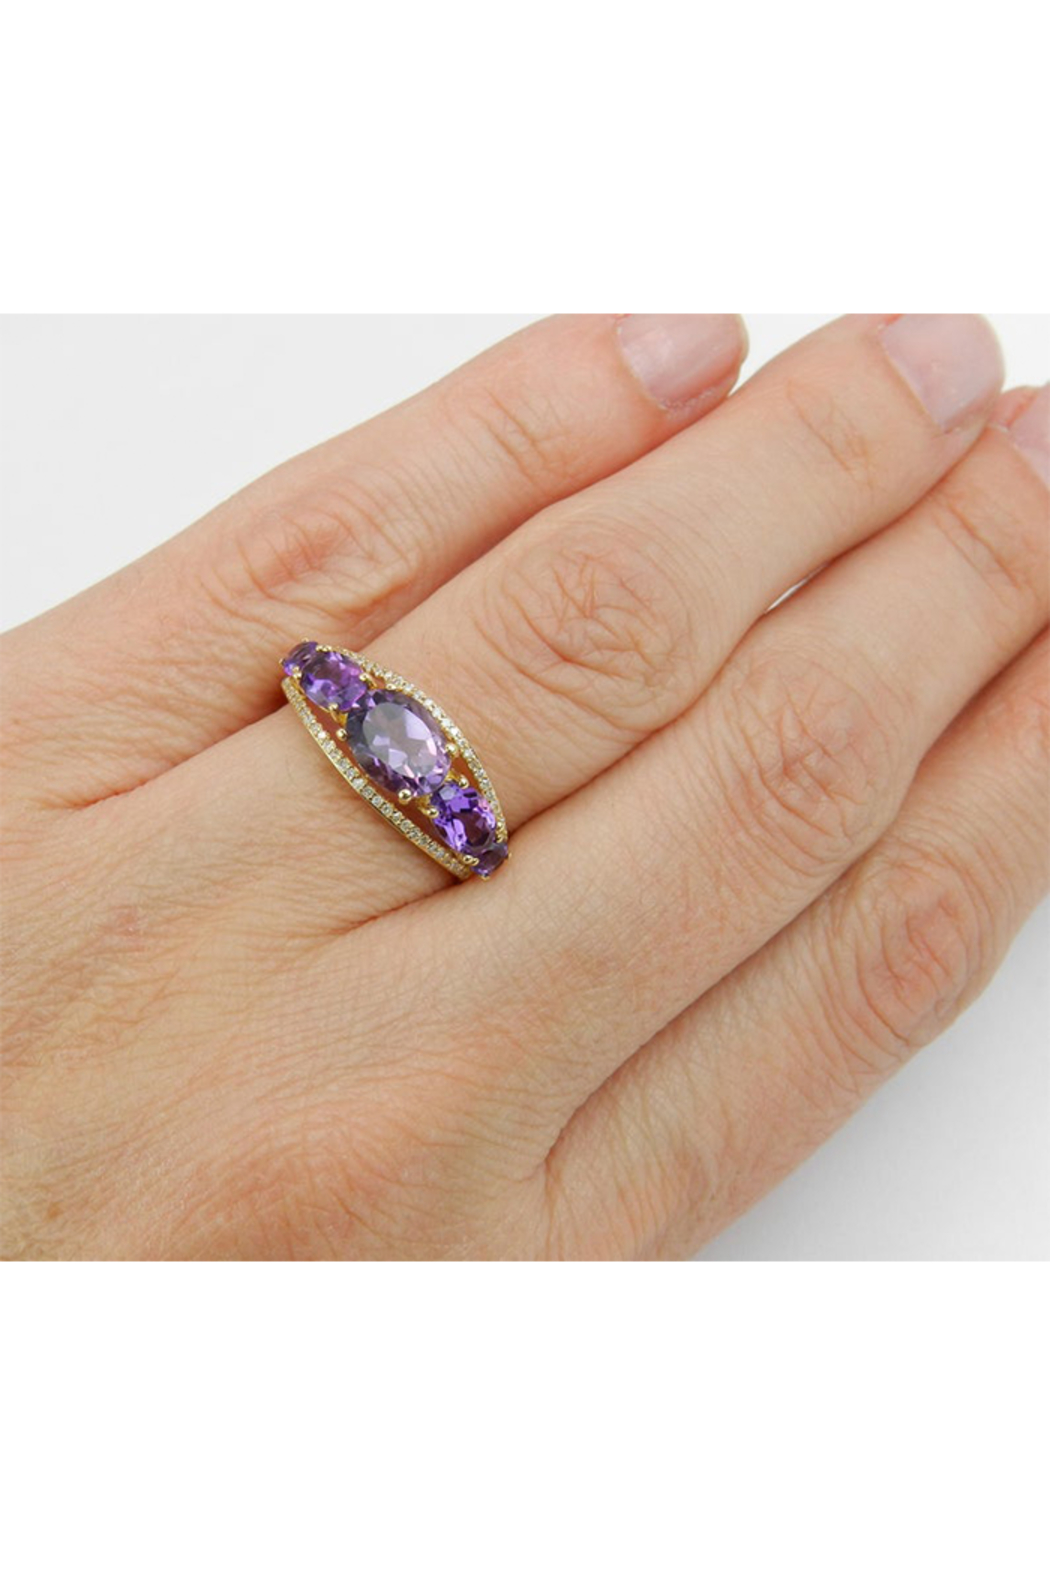 Margolin & Co 14K Yellow Gold Diamond and Amethyst Cocktail Ring Anniversary Band Size 7 Stackable Look - Back Cropped Image